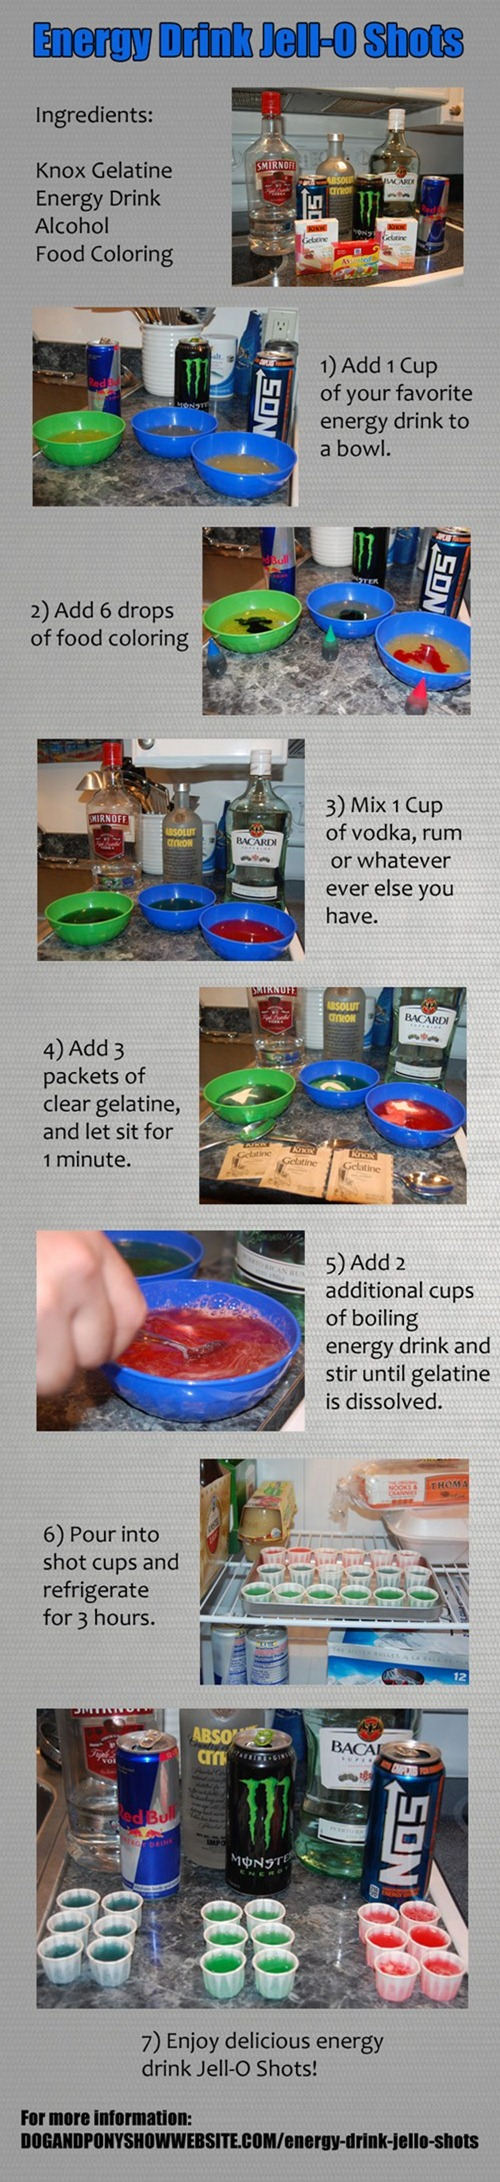 how-to-make-red-bull-jell-o-shots-of-the-day